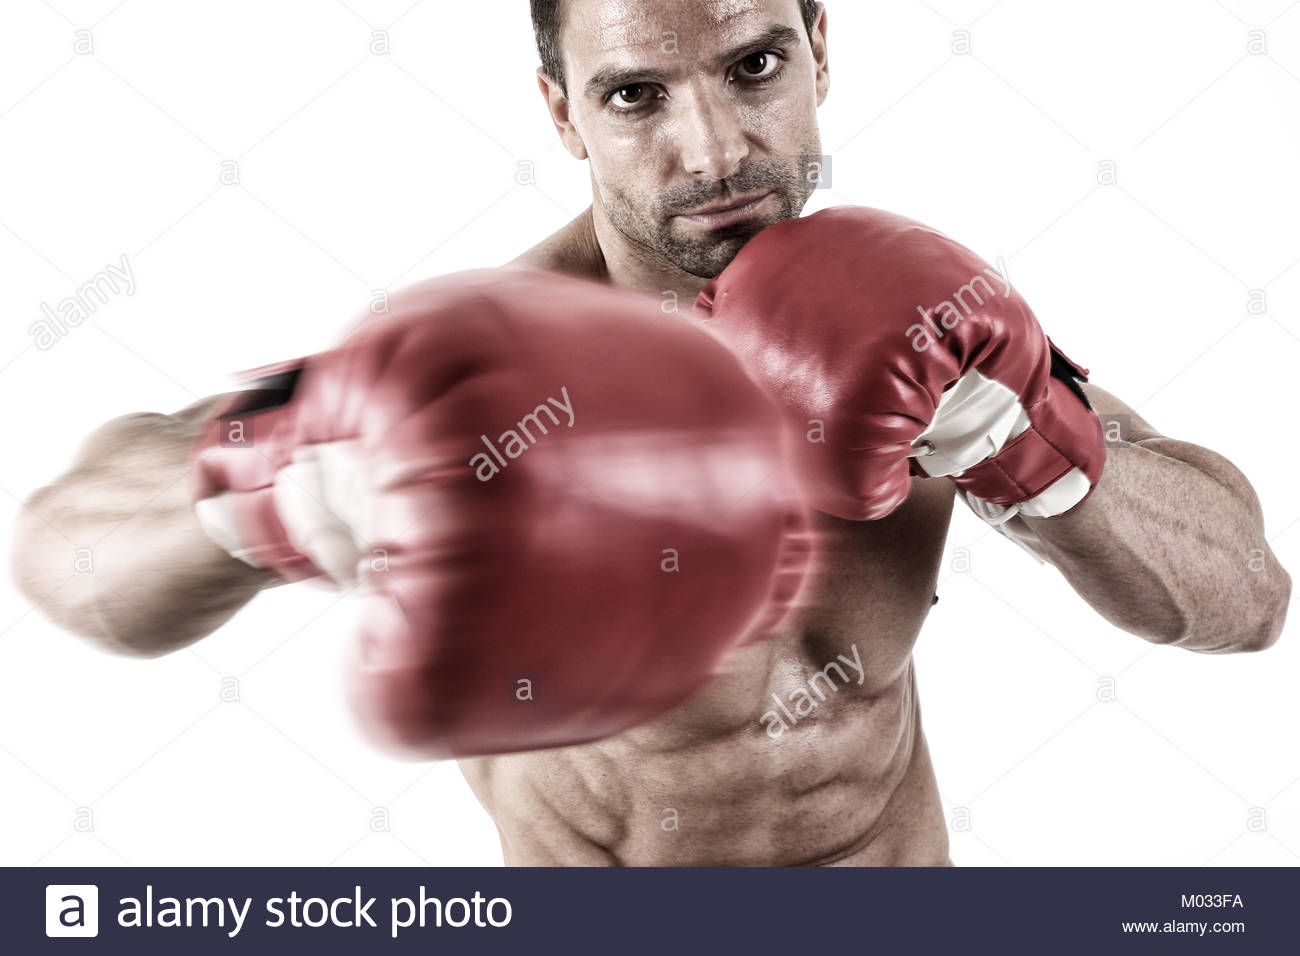 Muscular fighter punching in front of white background - Stock Image